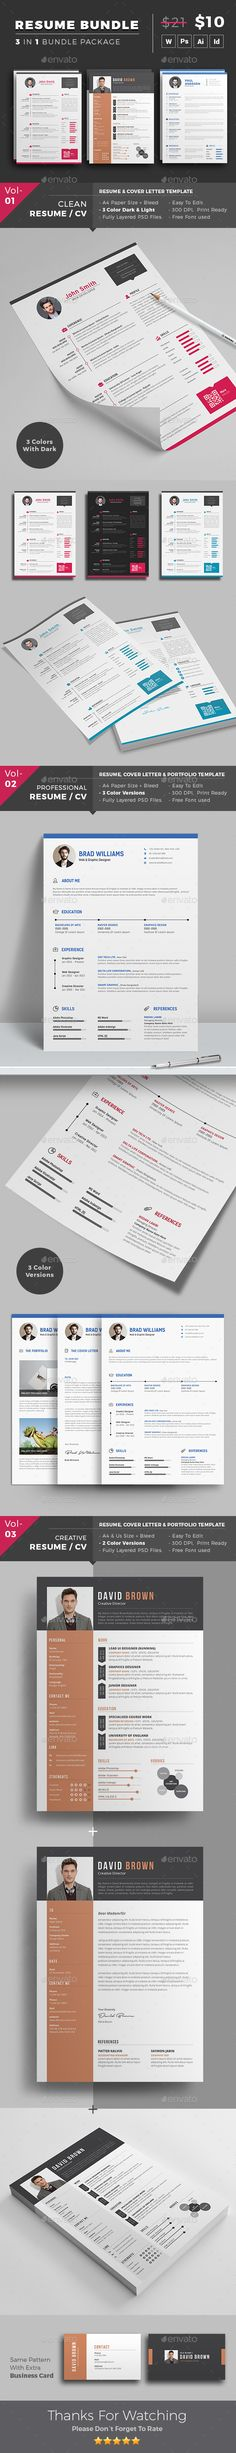 CV Word Ai illustrator, Cv template and Modern resume - net resume